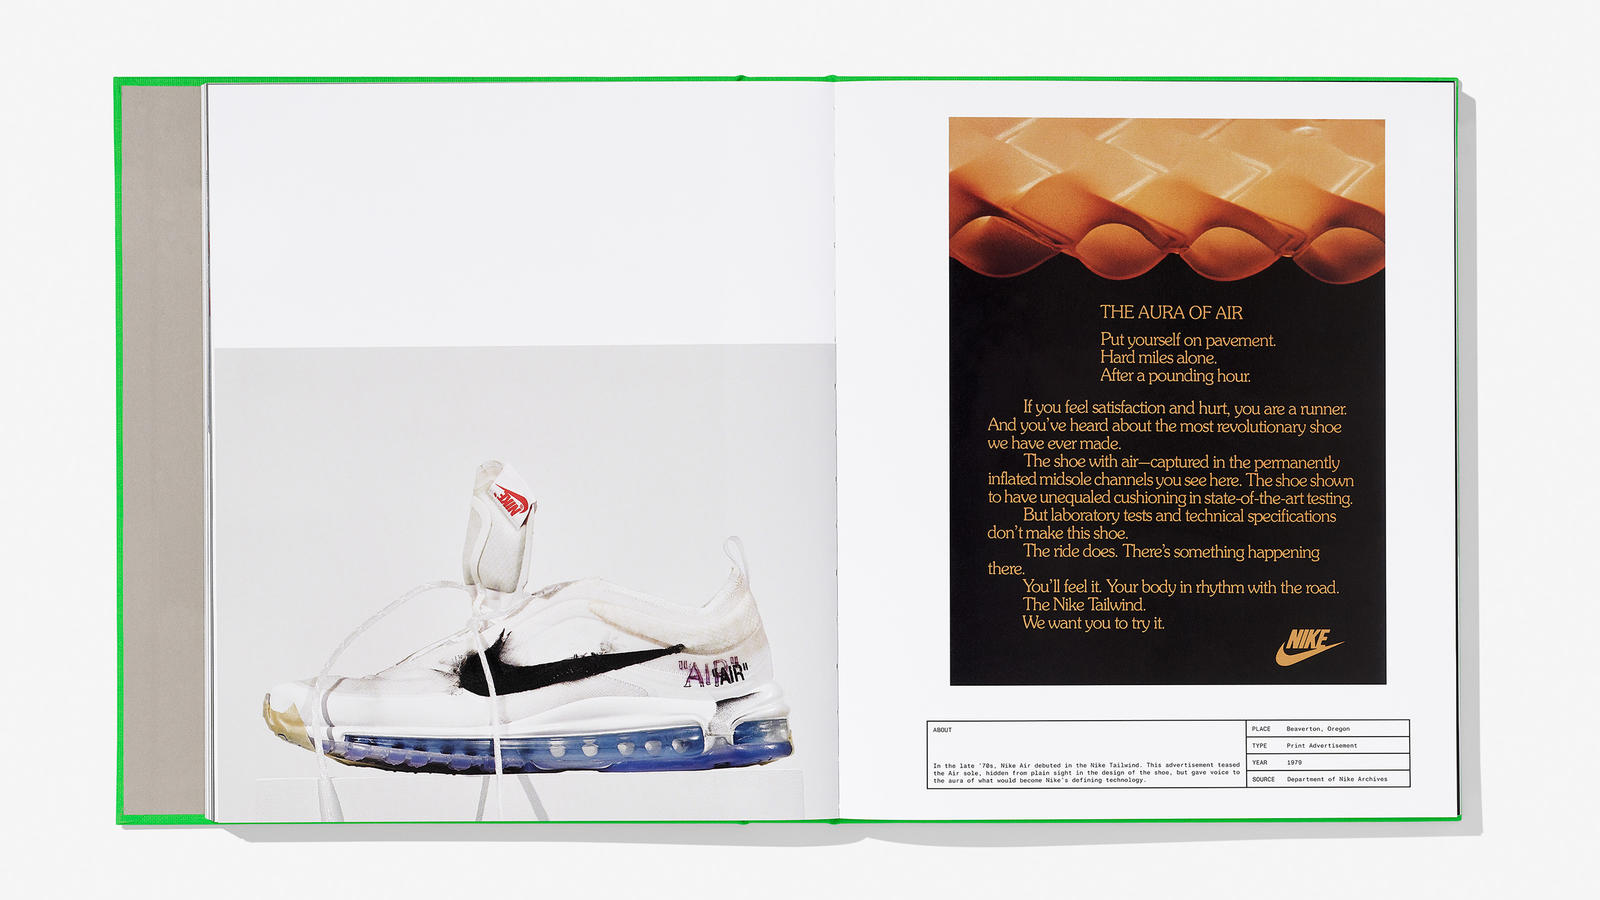 Nike Virgil Abloh Taschen ICONS Book 7